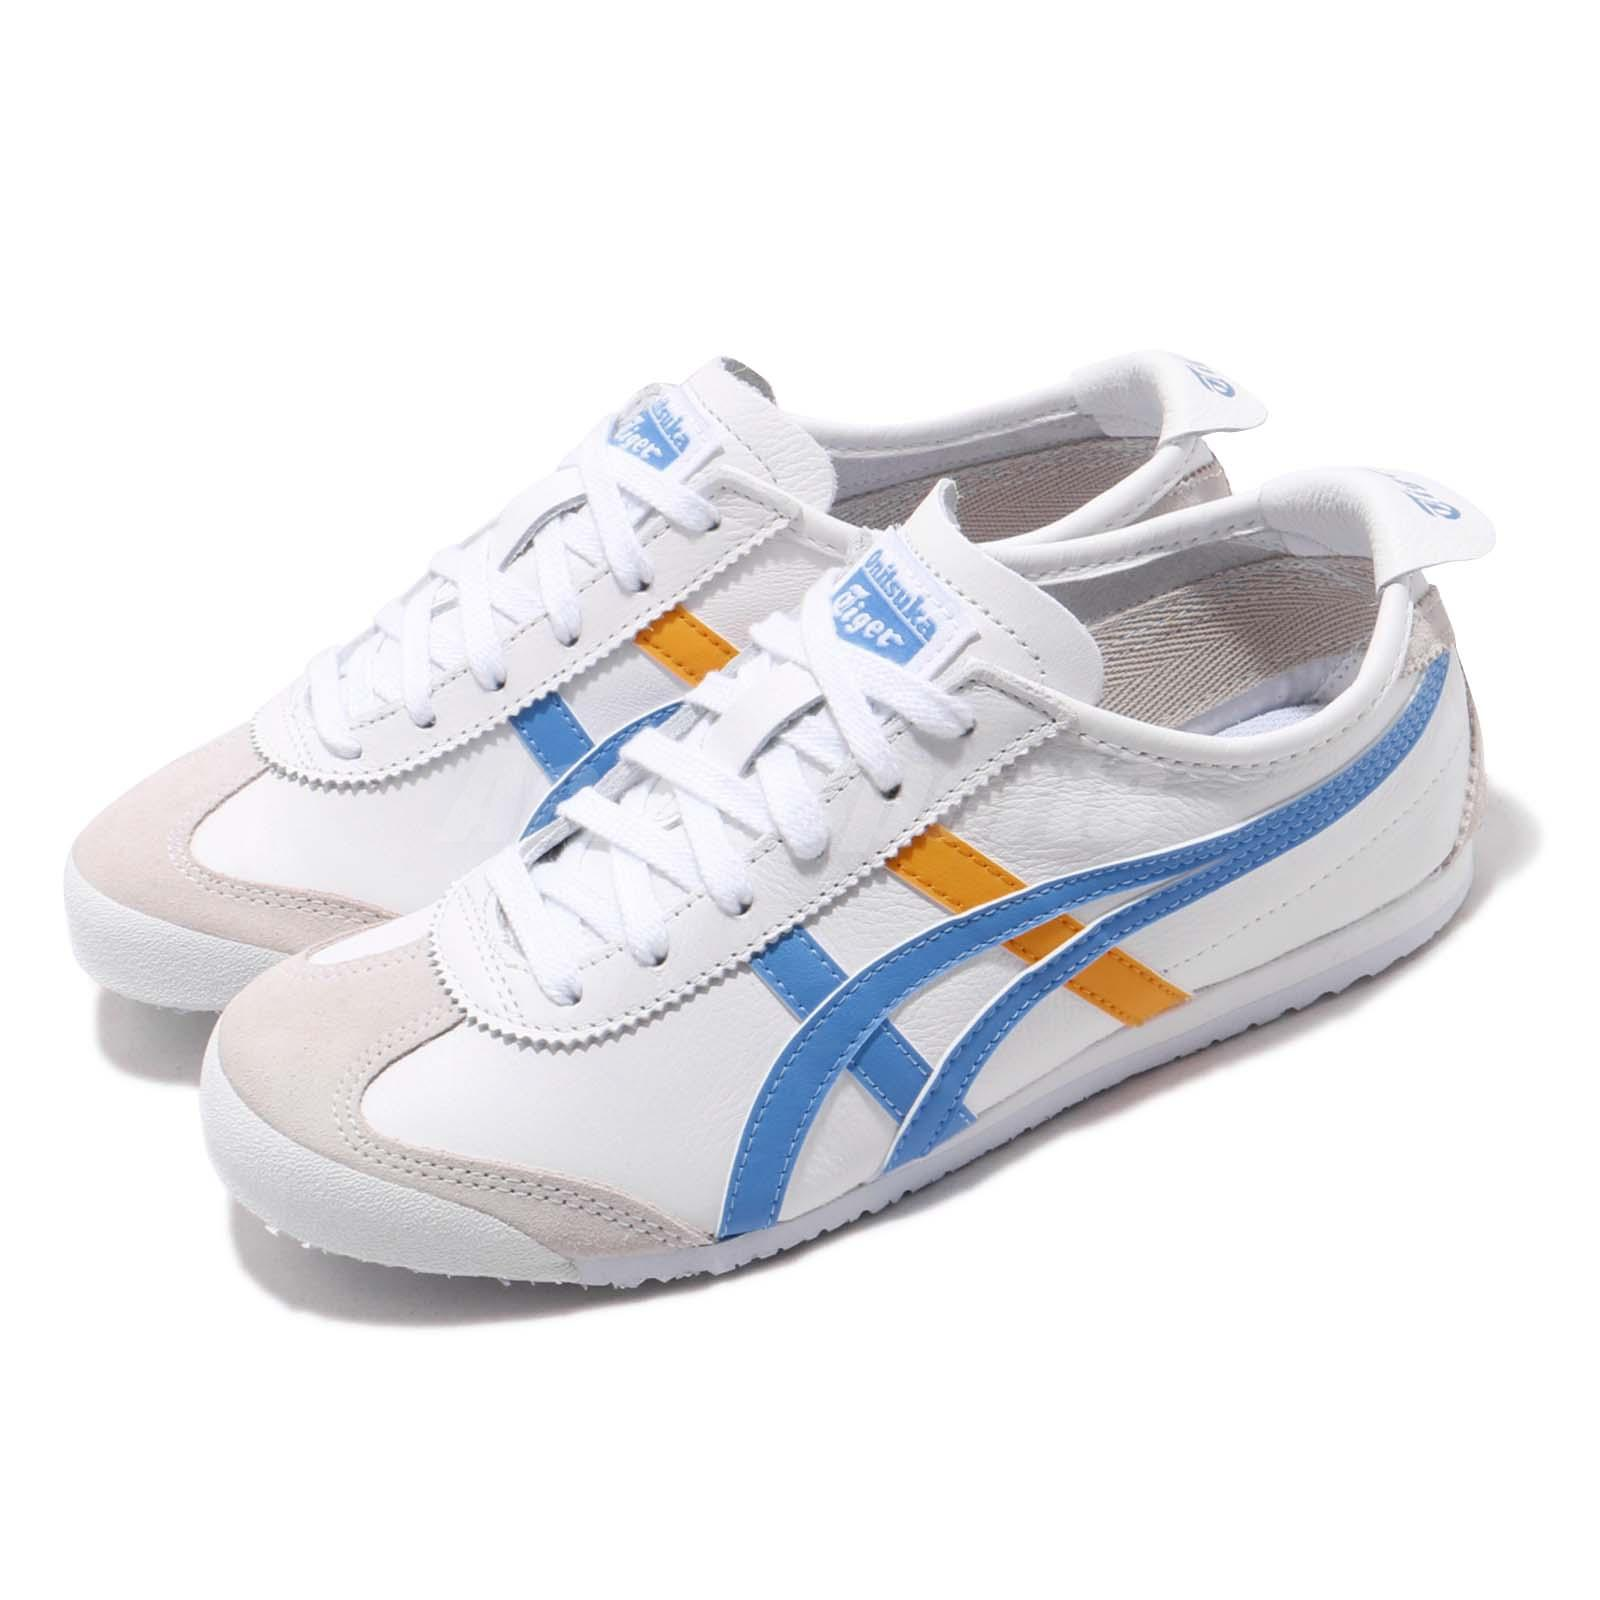 huge selection of 5486f 61ca4 Details about Asics Onitsuka Tiger Mexico 66 White Blue Women Running  Casual Shoe 1182A078-102